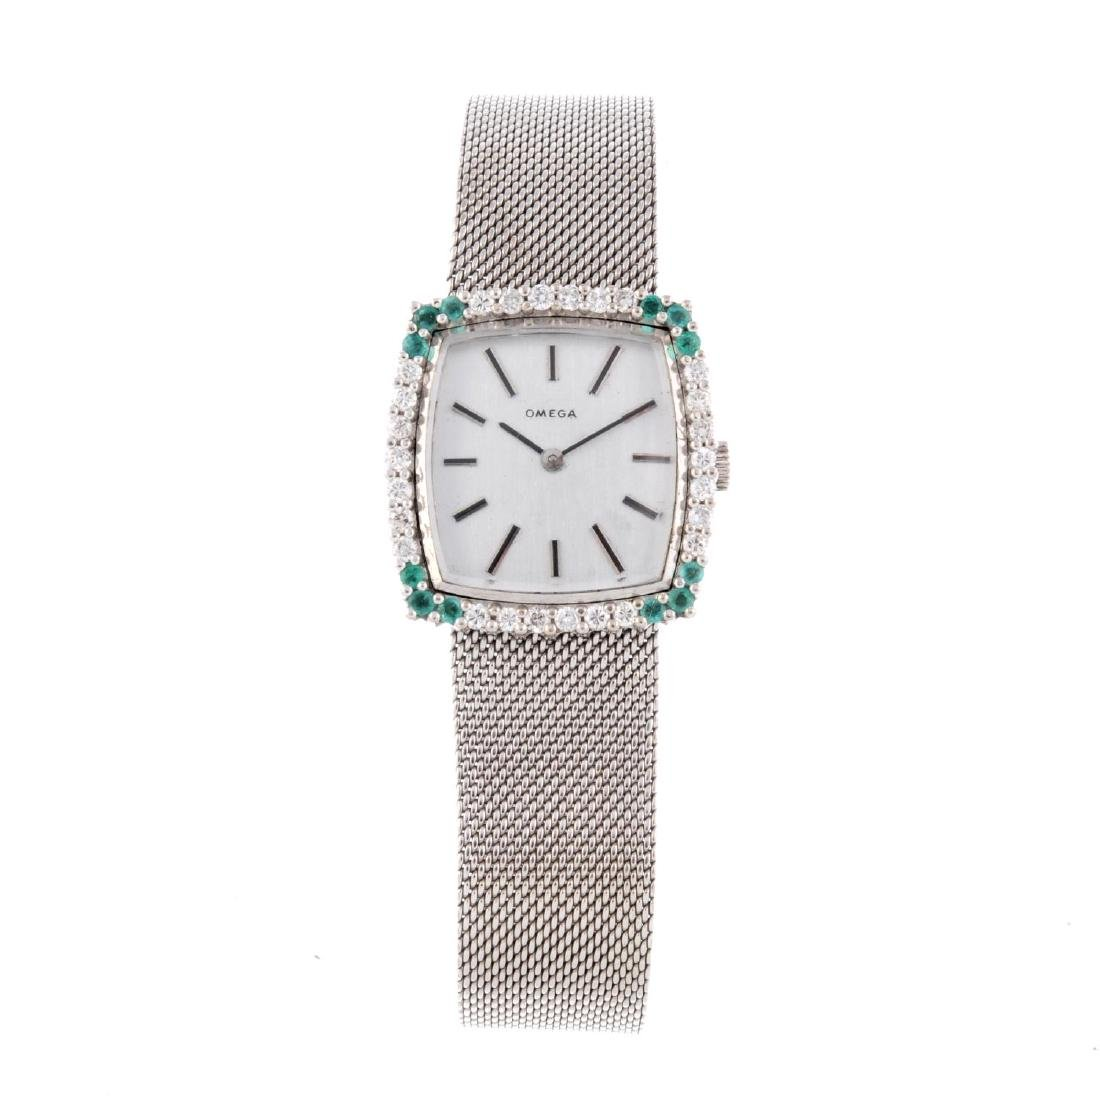 OMEGA - a lady's bracelet watch. White metal factory